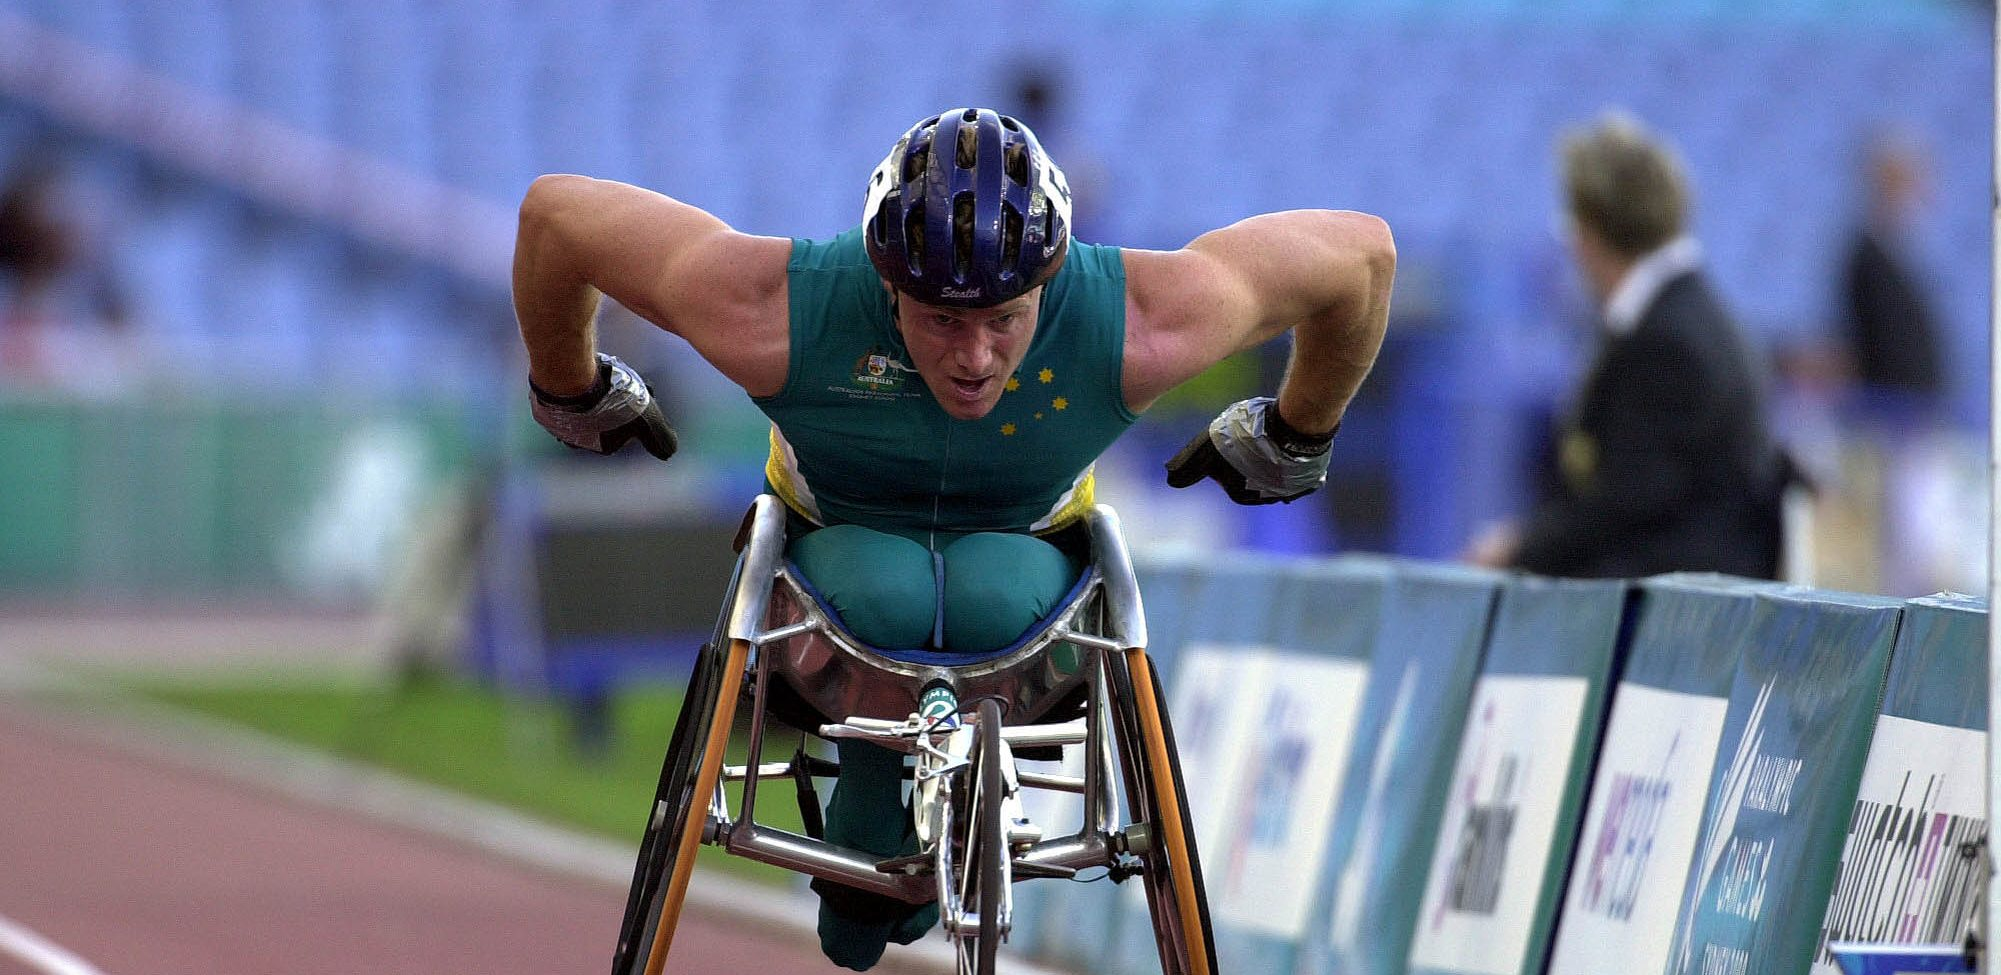 231000   Athletics Wheelchair Racing 10km Final John Maclean Action 2   3b   2000 Sydney Race Photo E1549342818807